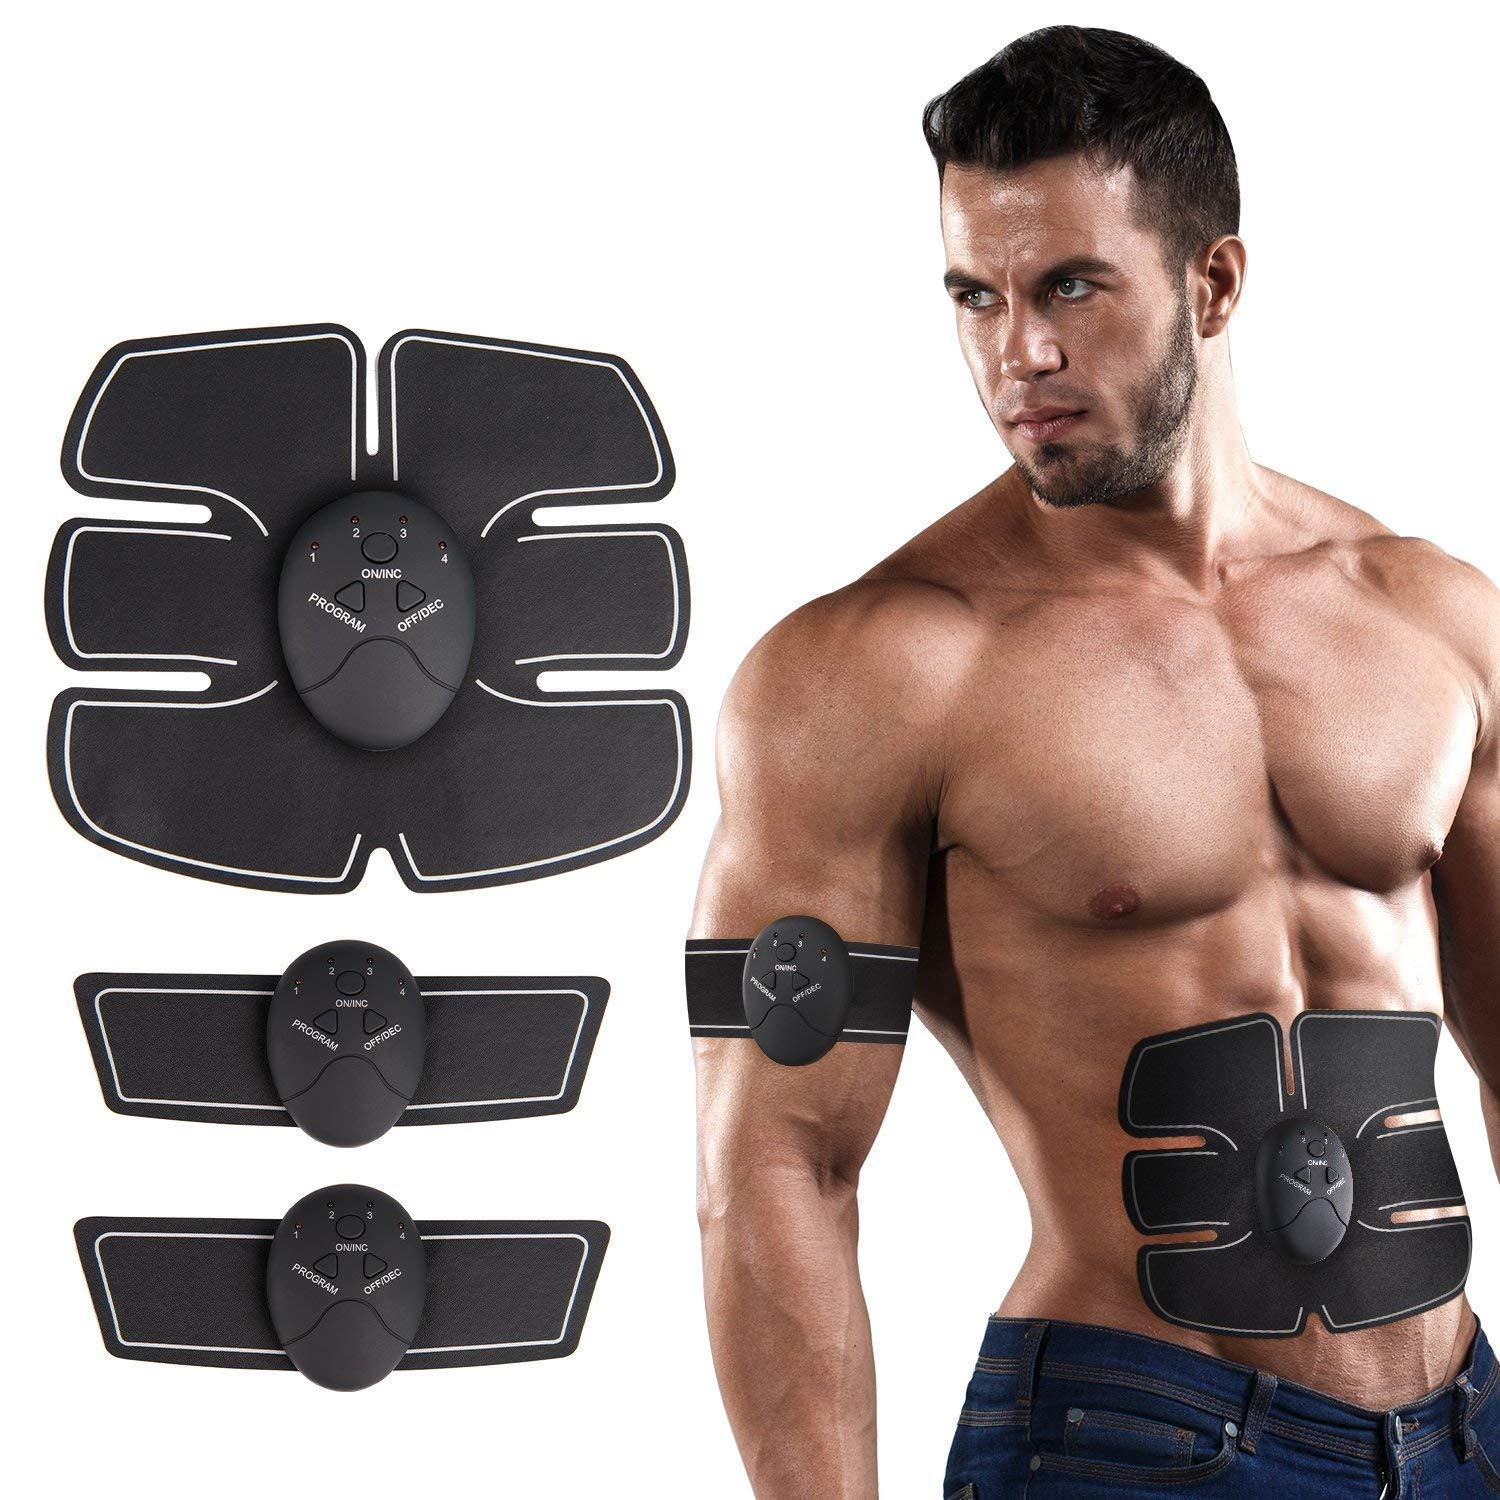 FitStart EMS Muscle Exerciser | Abdominal, Arm and Leg Muscle Trainers